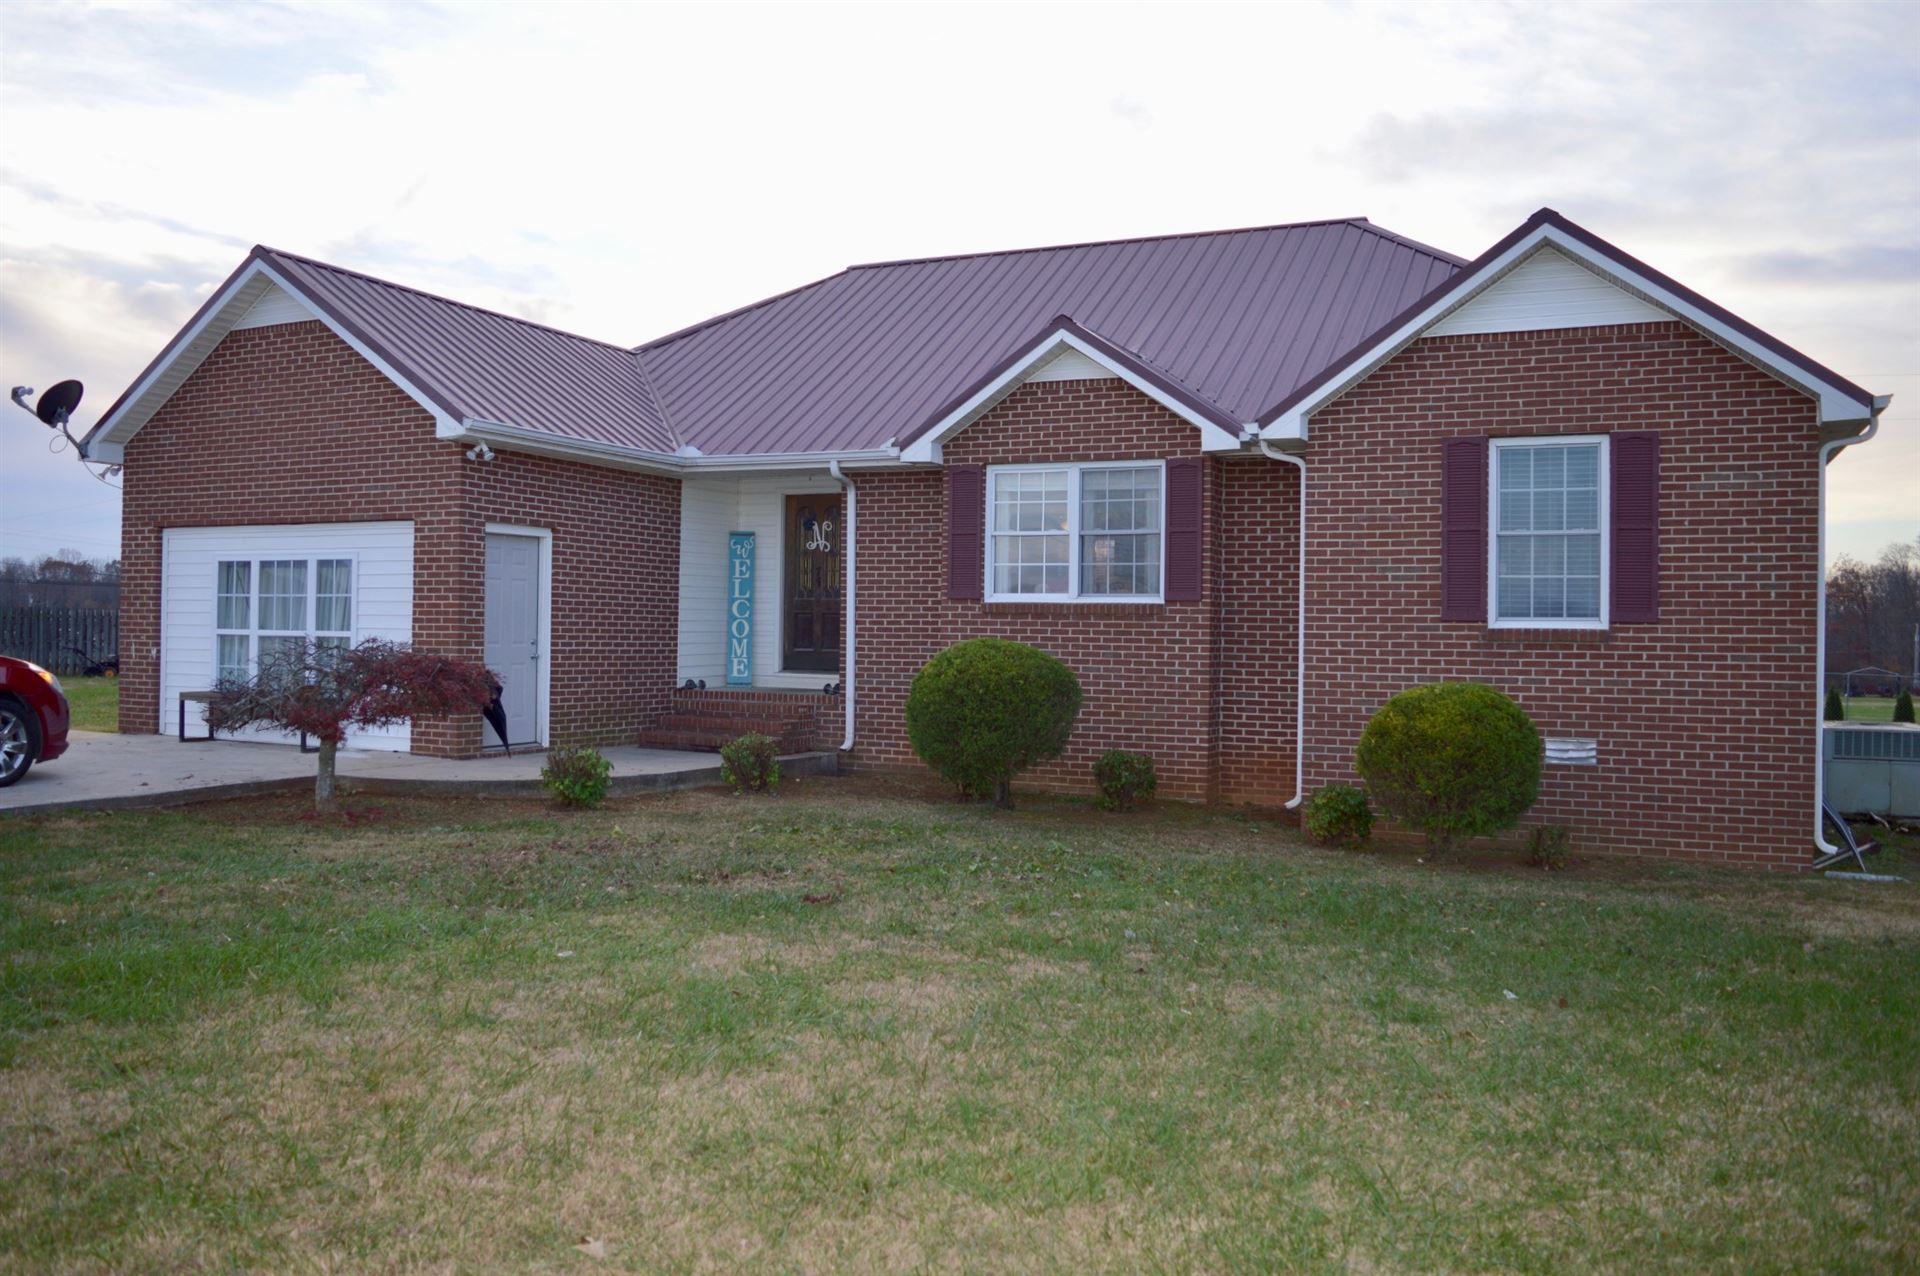 75 Young Ln, Winchester, TN 37398 - MLS#: 2210112